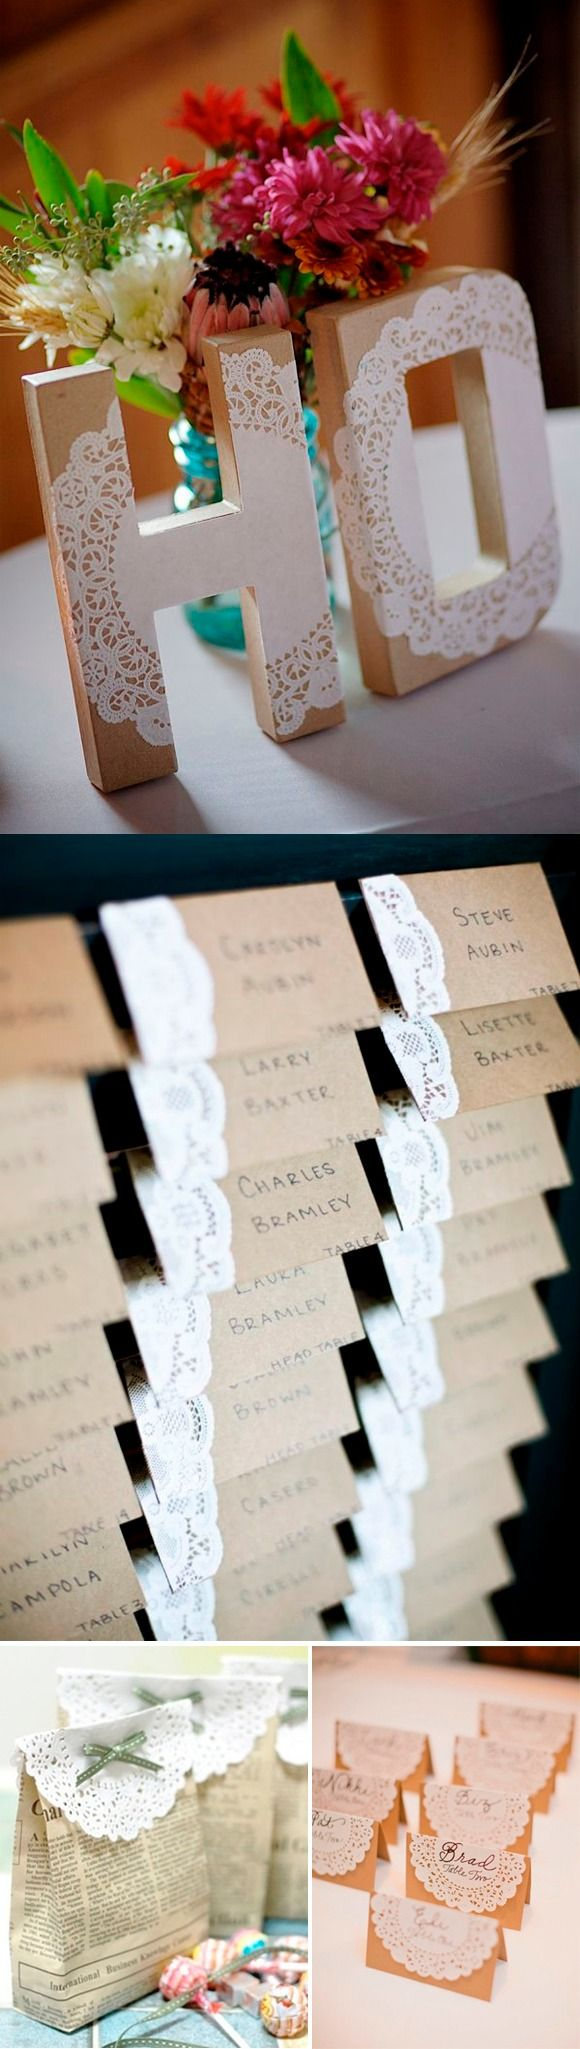 Ideas DIY para hacer con blondas / http://www.beautifulbluebrides.com